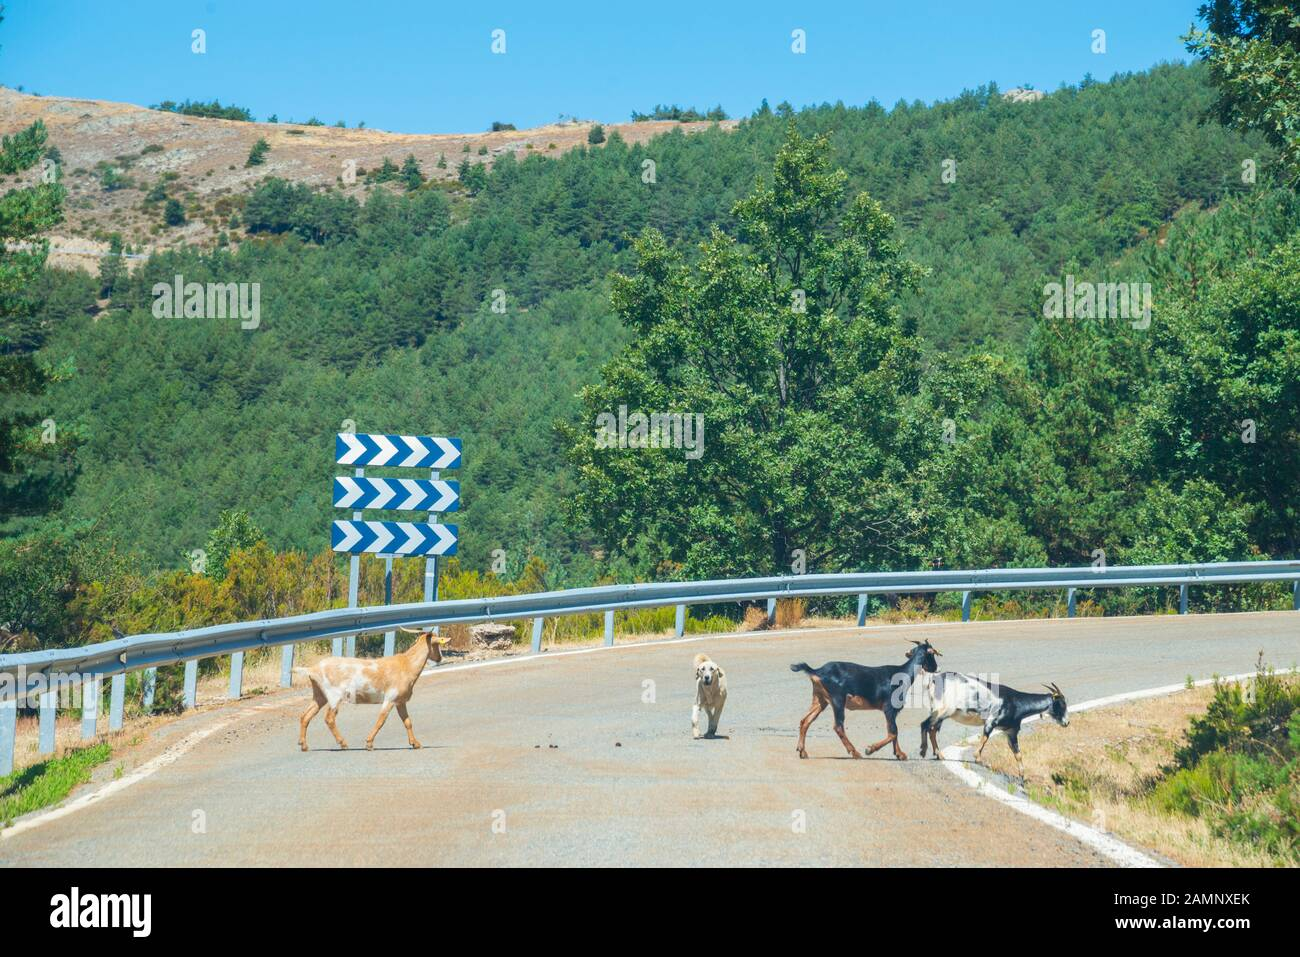 Group of goats crossing a road. Stock Photo